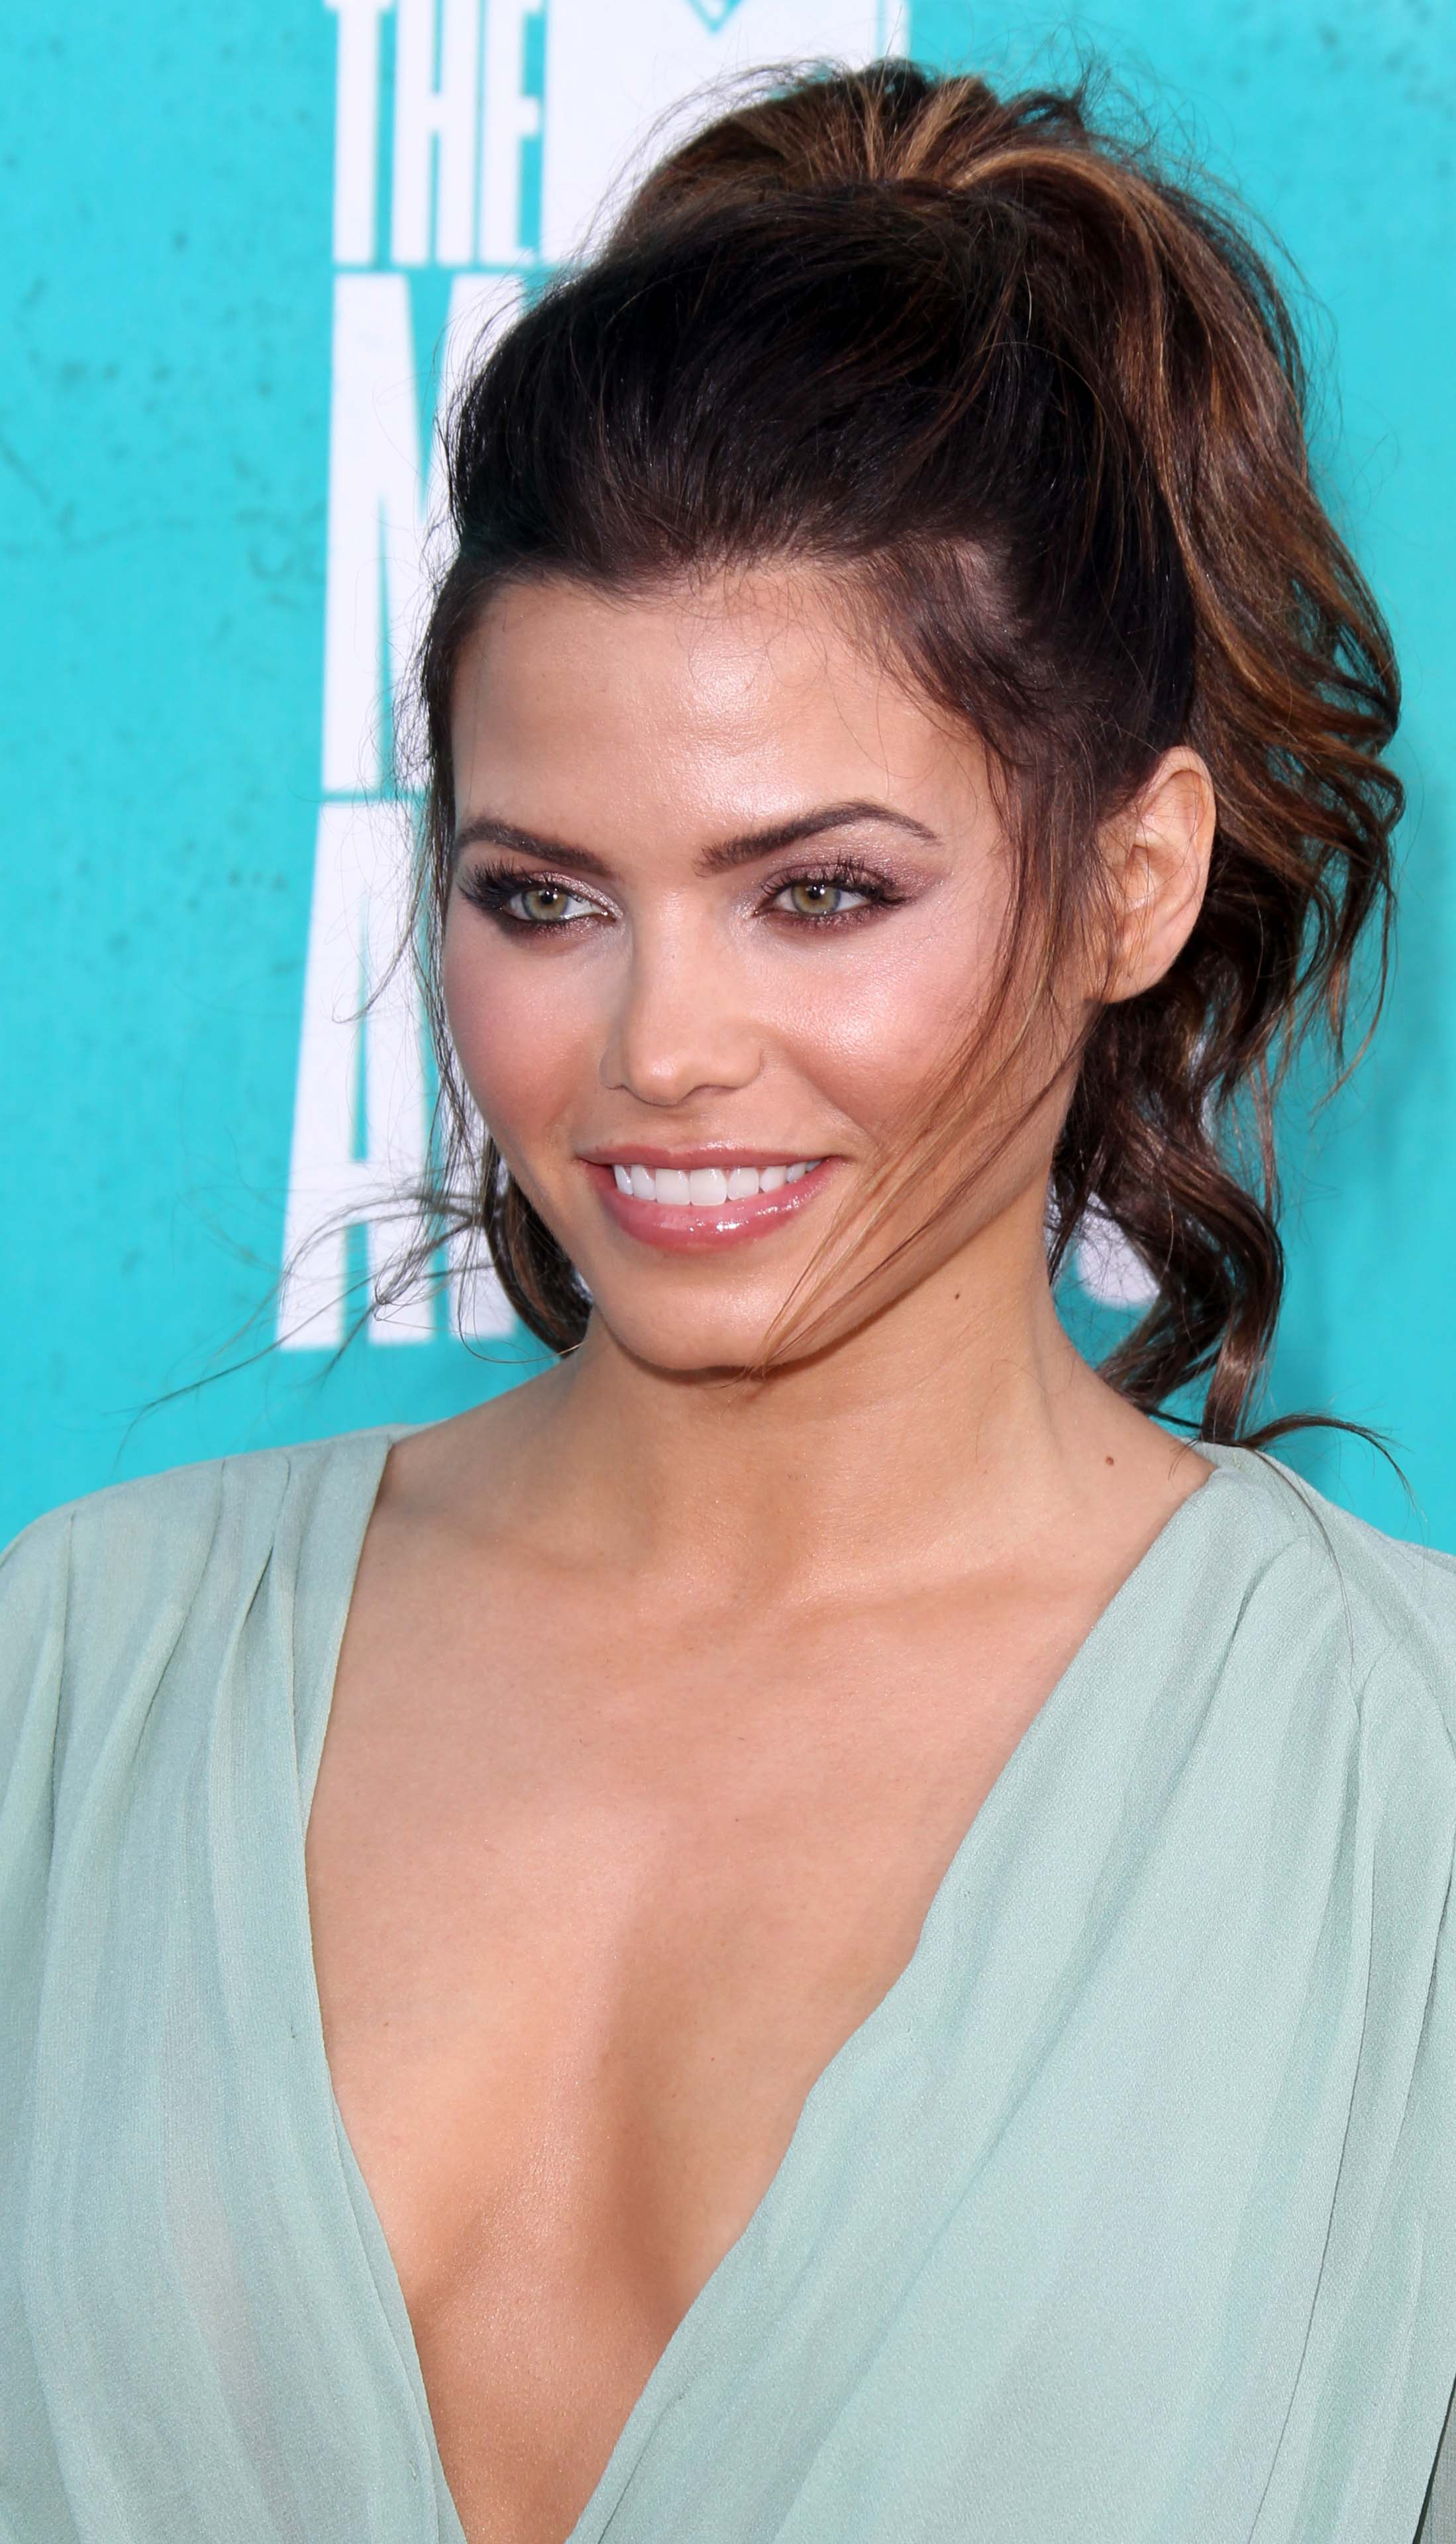 Jenna Dewan's High Ponytail